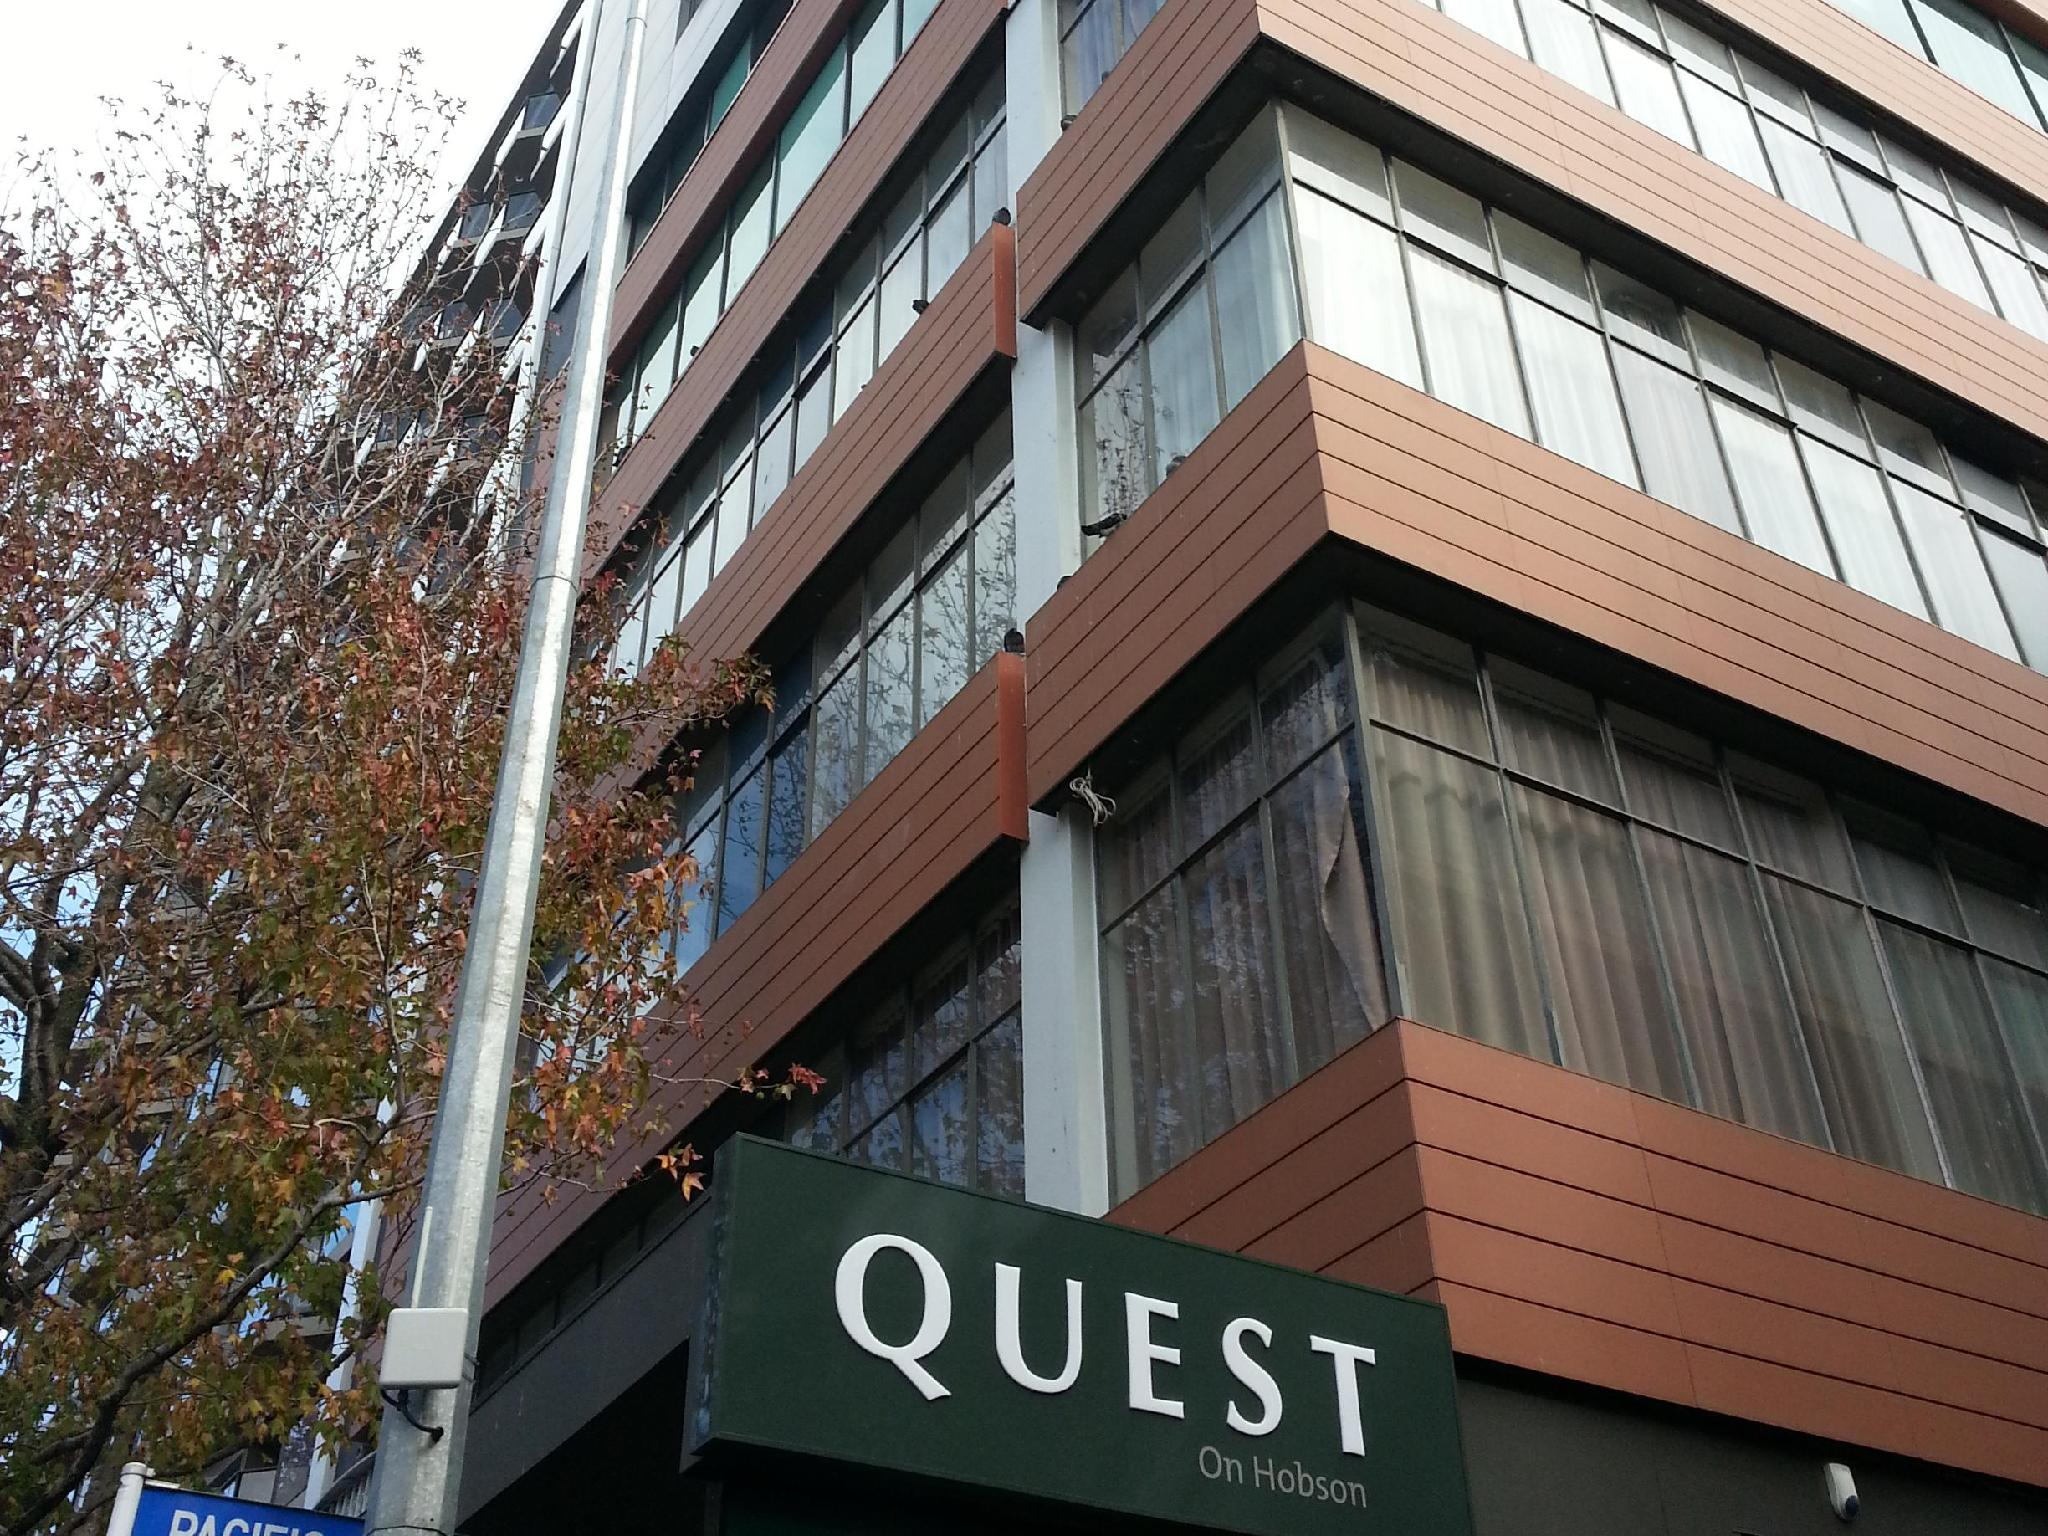 Quest on Hobson